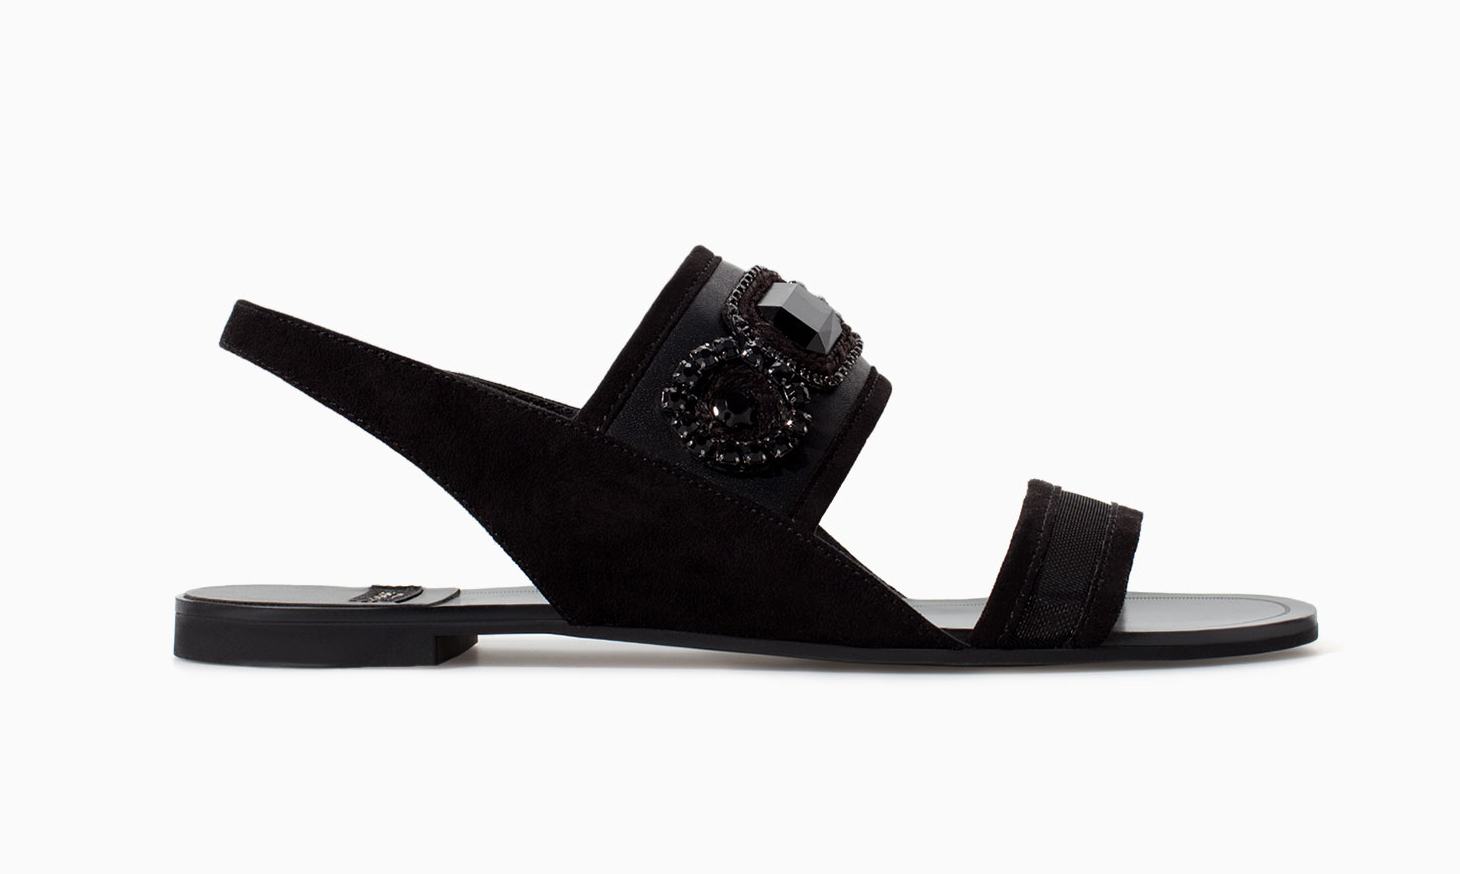 Zara black flat sandals with rhinestones ($60)